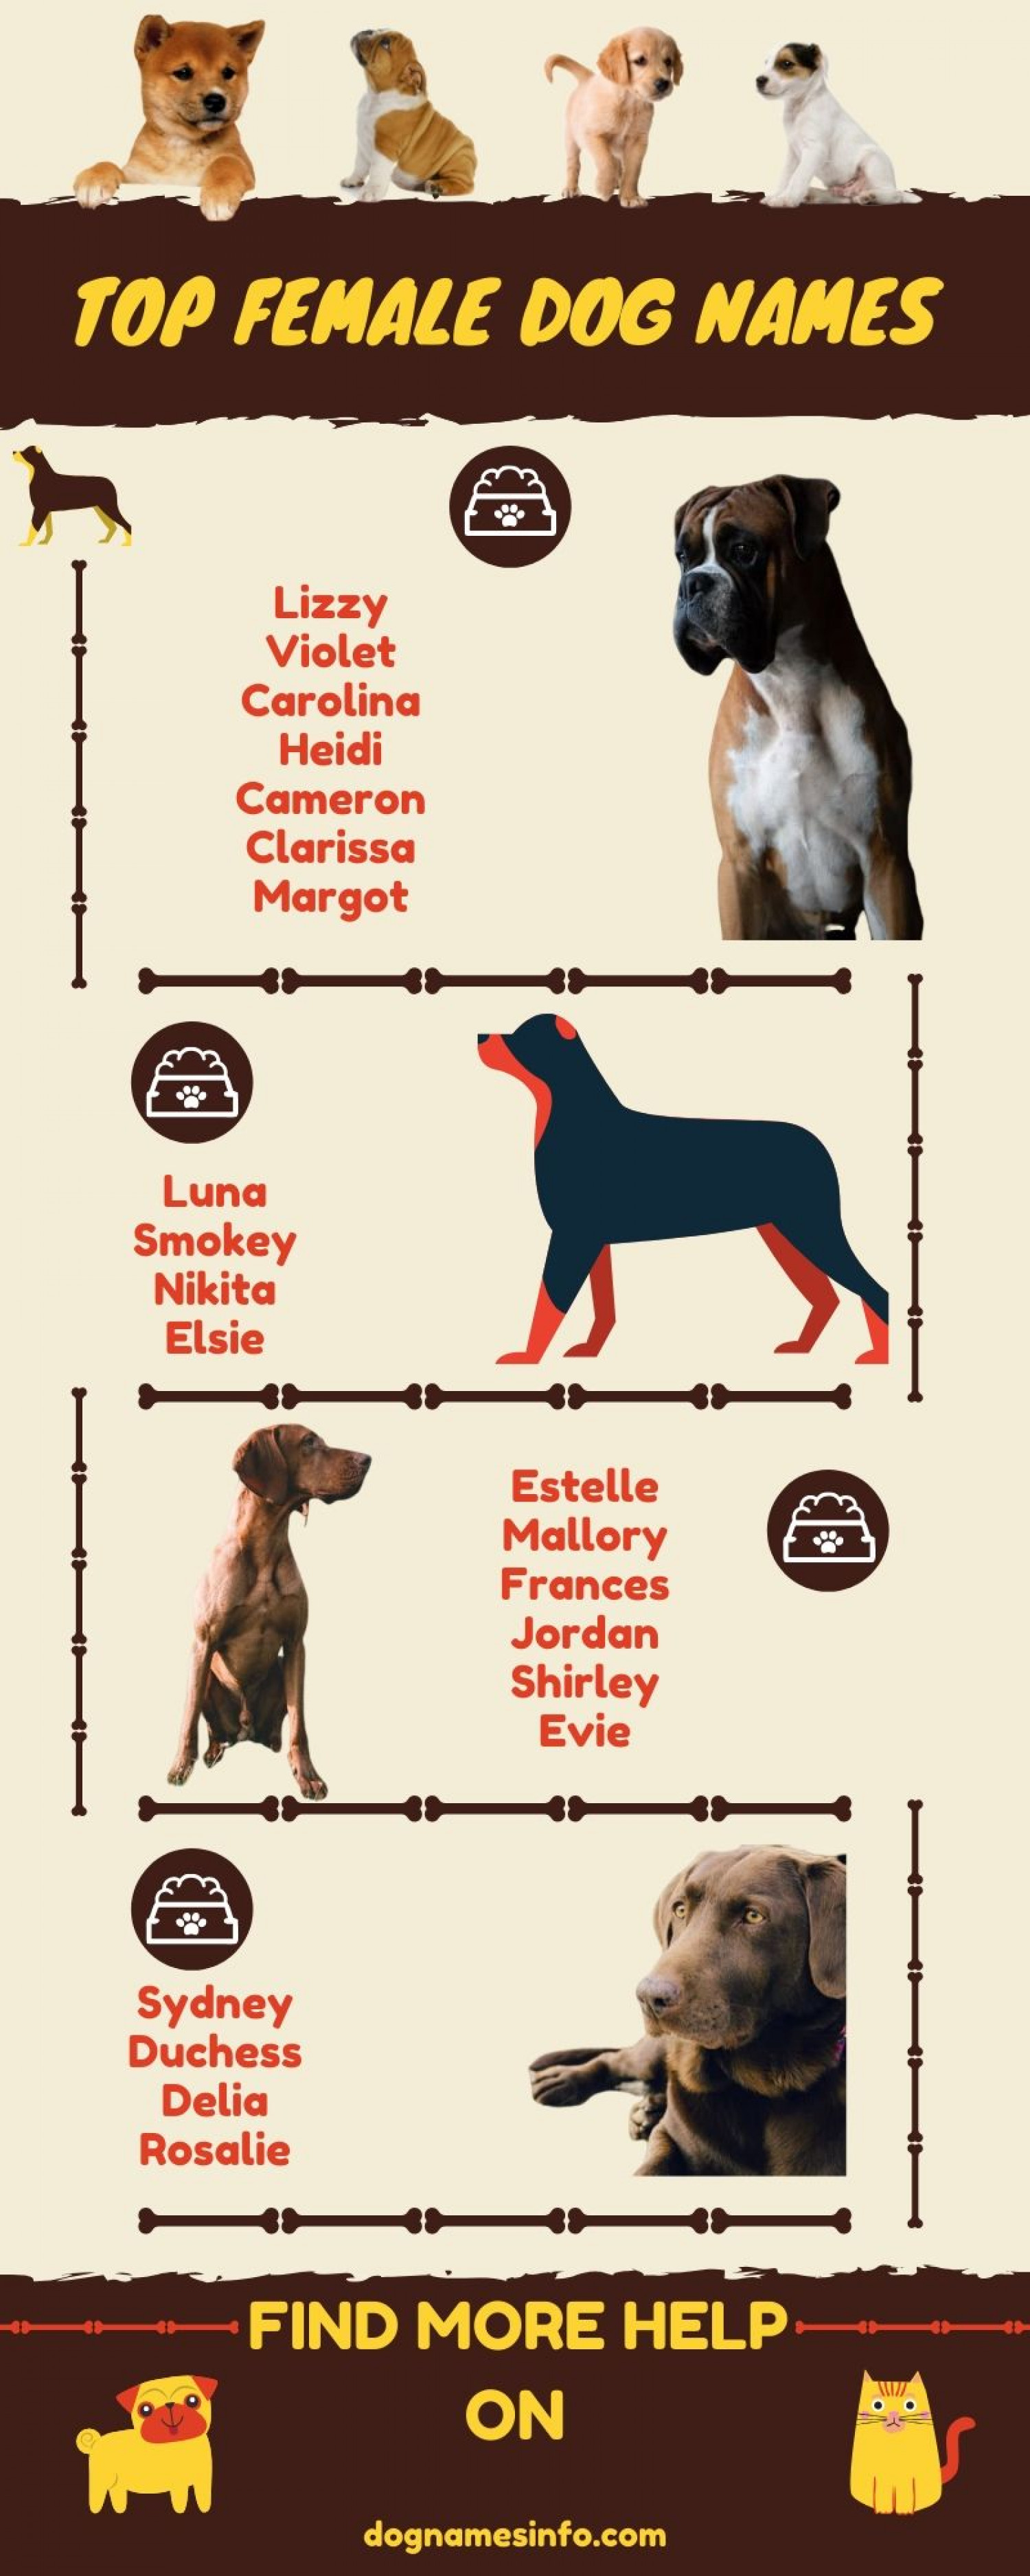 Top Female Dog Names Infographic